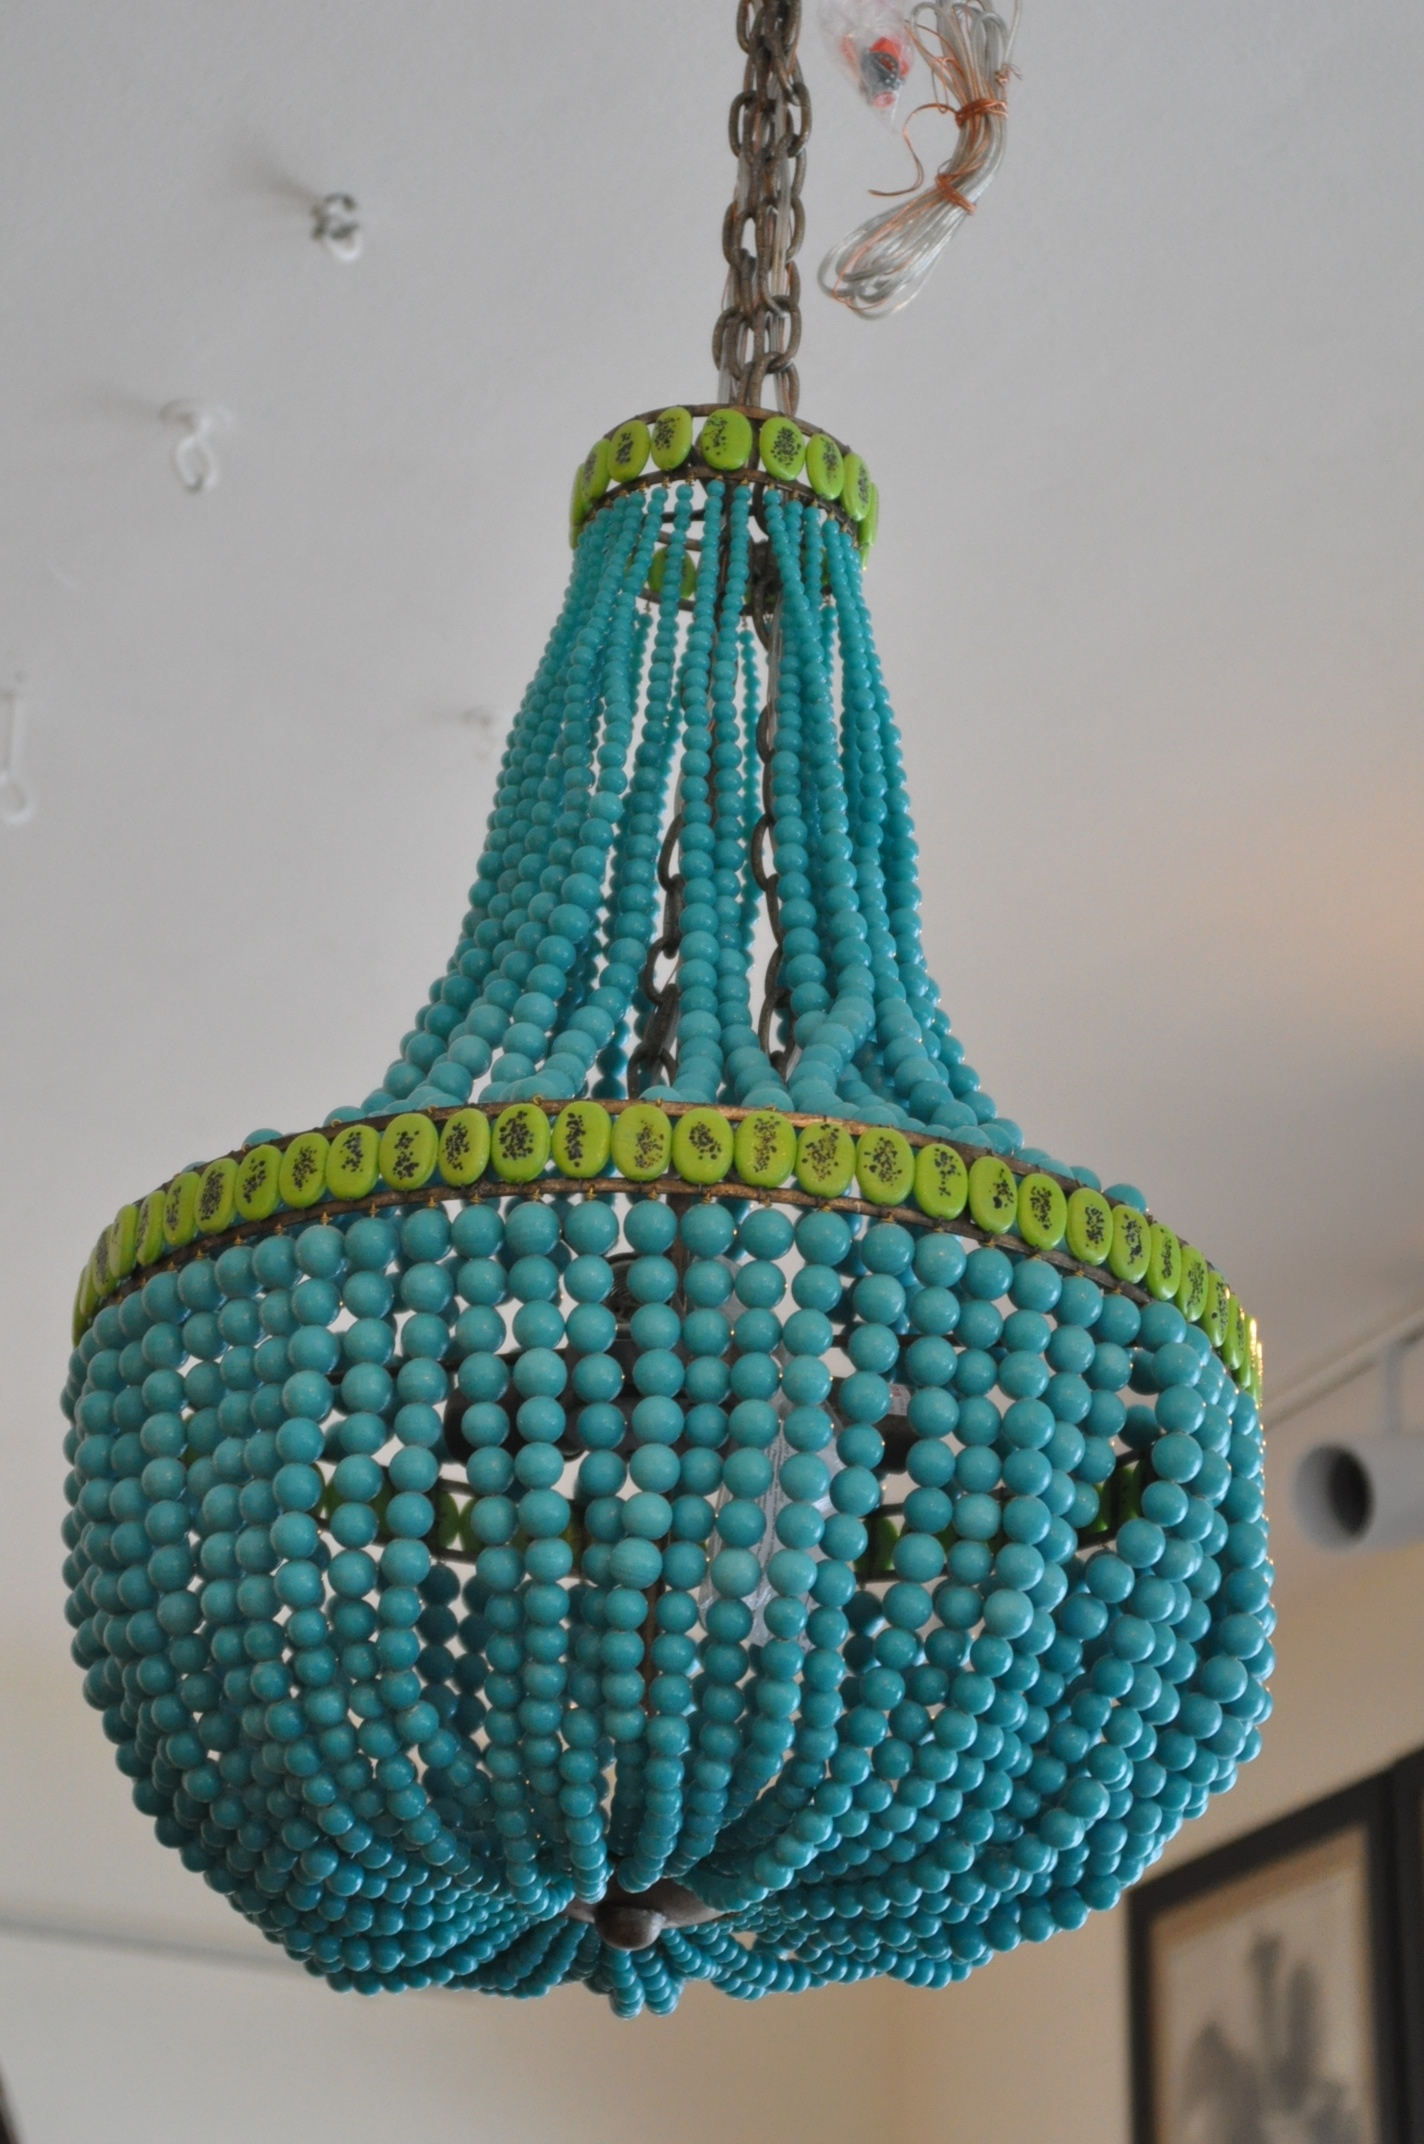 Beaded Empire Style Chandelier Mecox Gardens Regarding Turquoise Empire Chandeliers (Image 8 of 25)